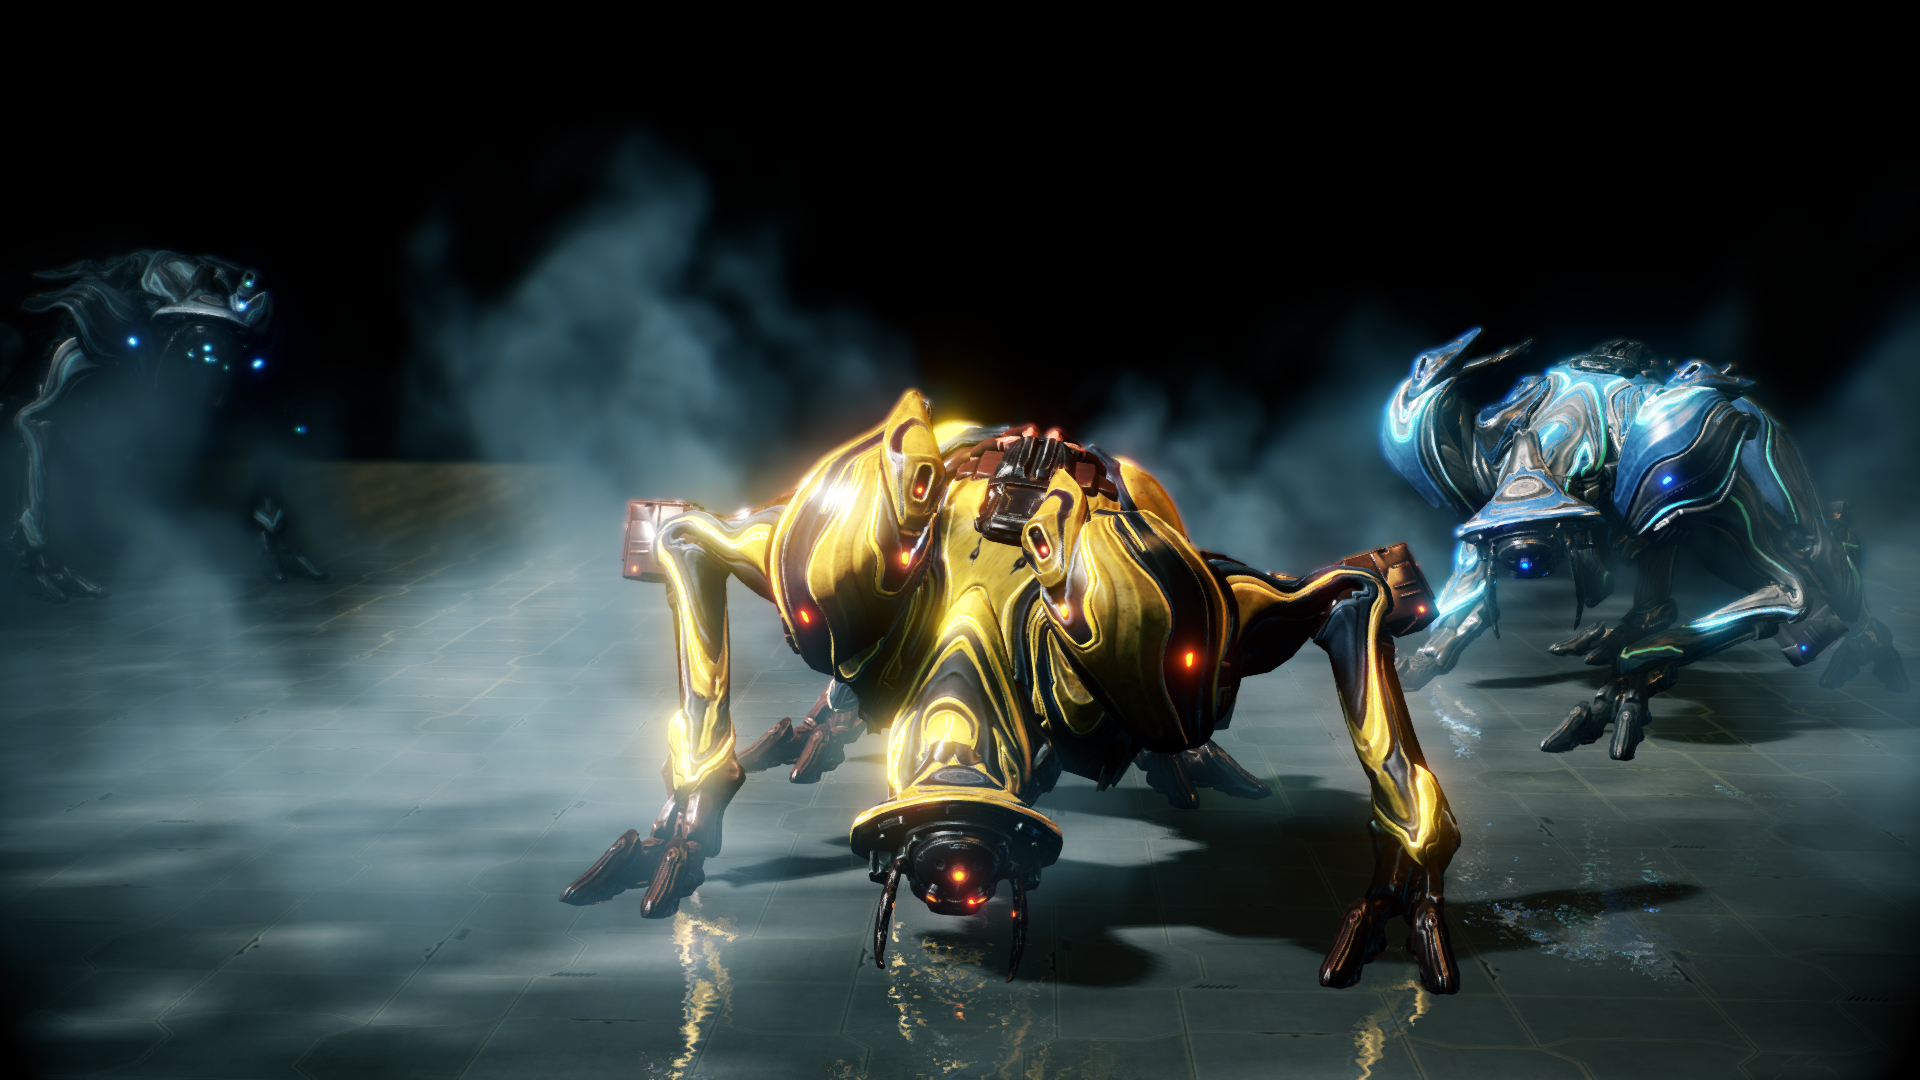 Bosses warframe wiki fandom powered by wikia bosses are a unique enemy class outfitted with superior weapons high health rechargeable shields special abilities and other traits malvernweather Image collections